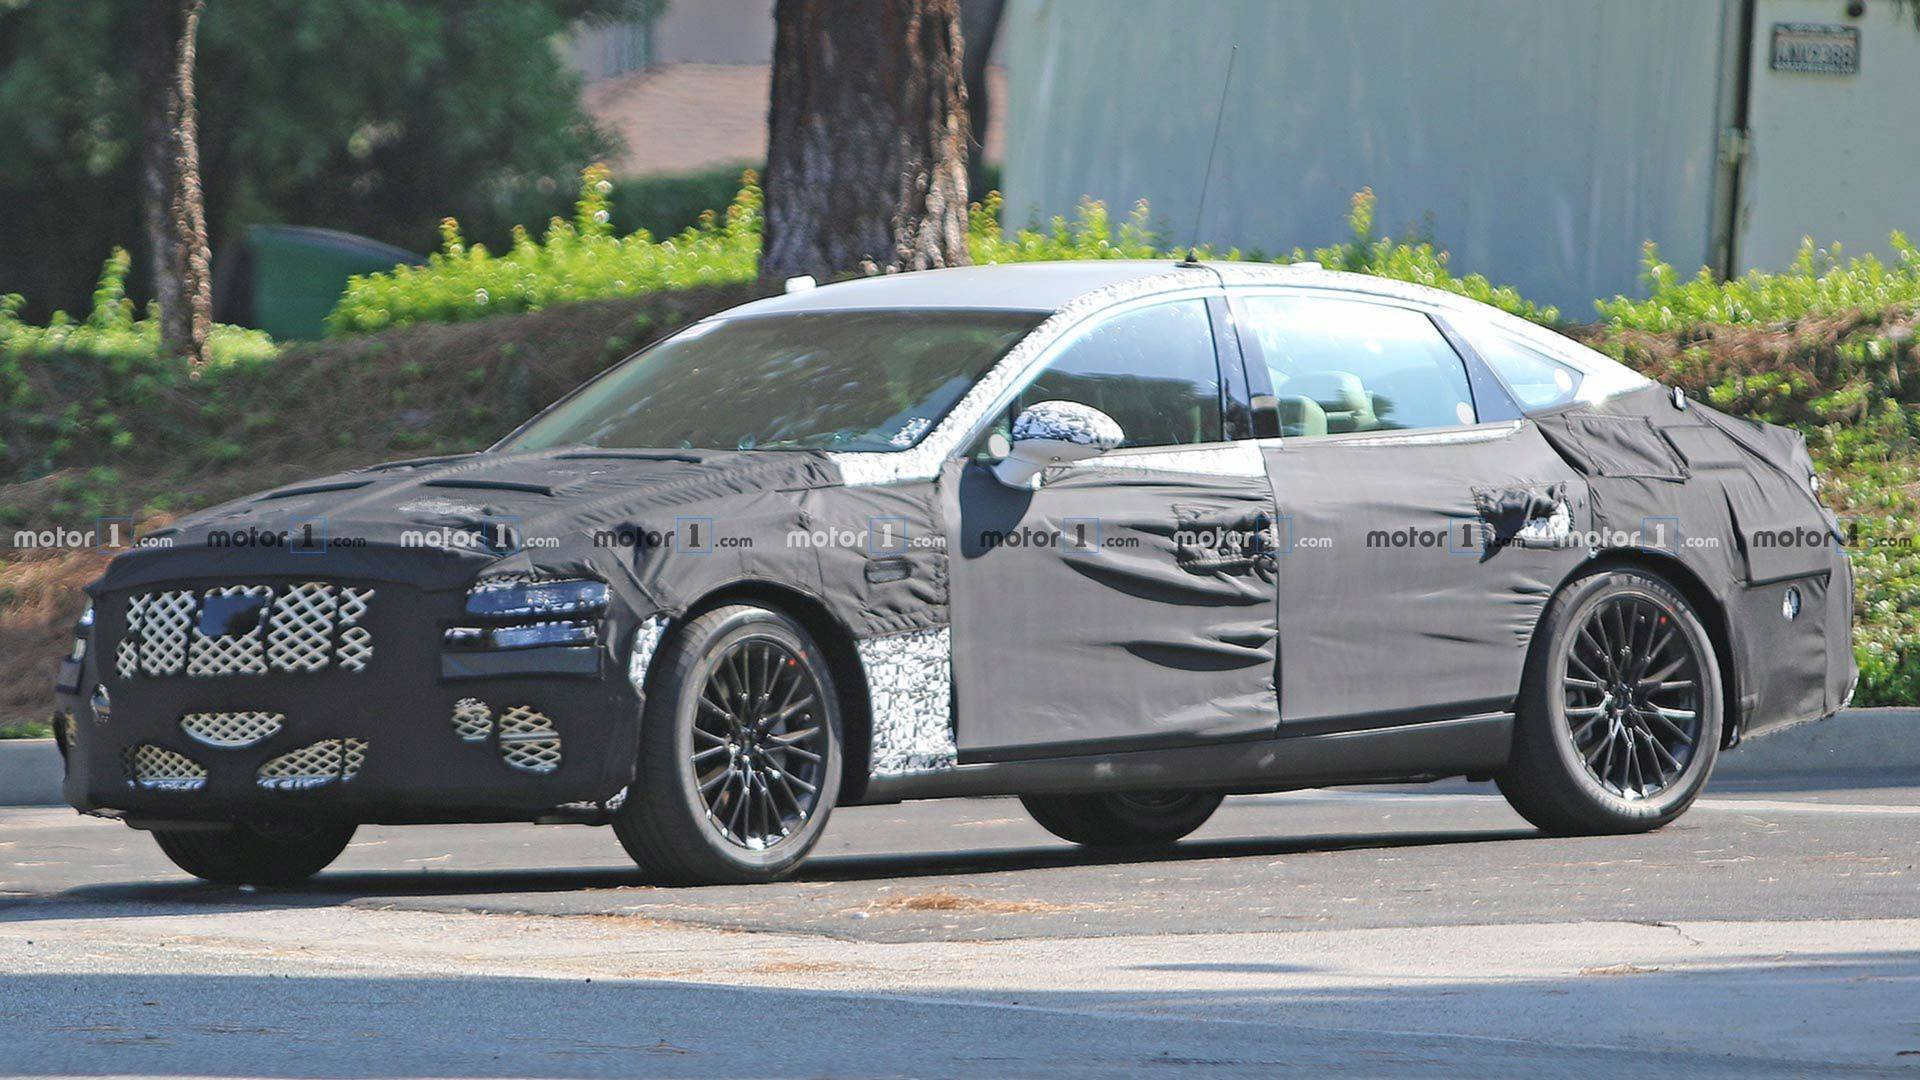 2020 Genesis G80 Spied Trying To Cover Up Sleeker Shape